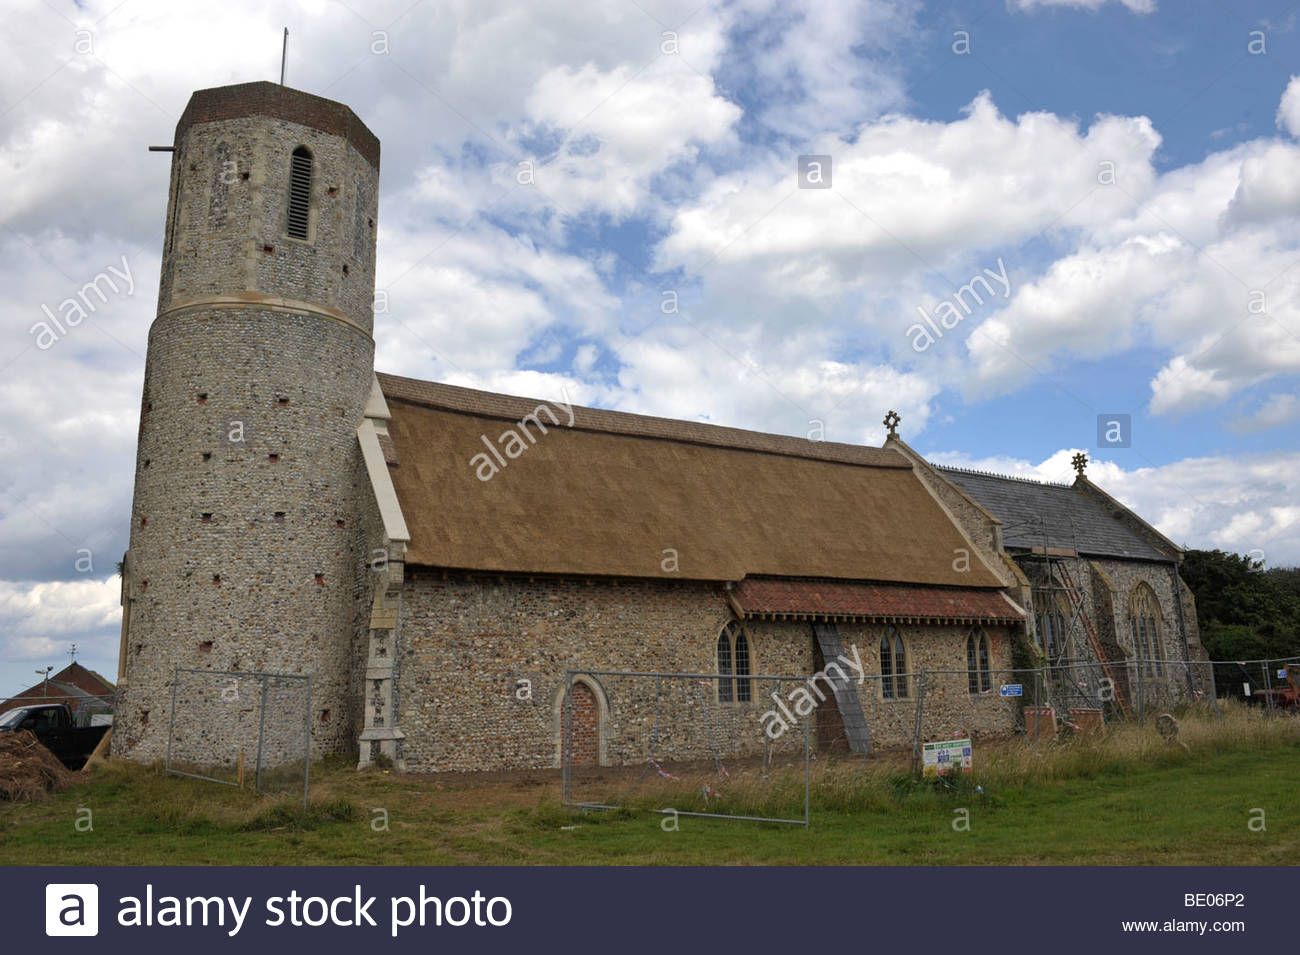 newly thatched roof of St Mary's Church, West Somerton, Norfolk. - Stock Image